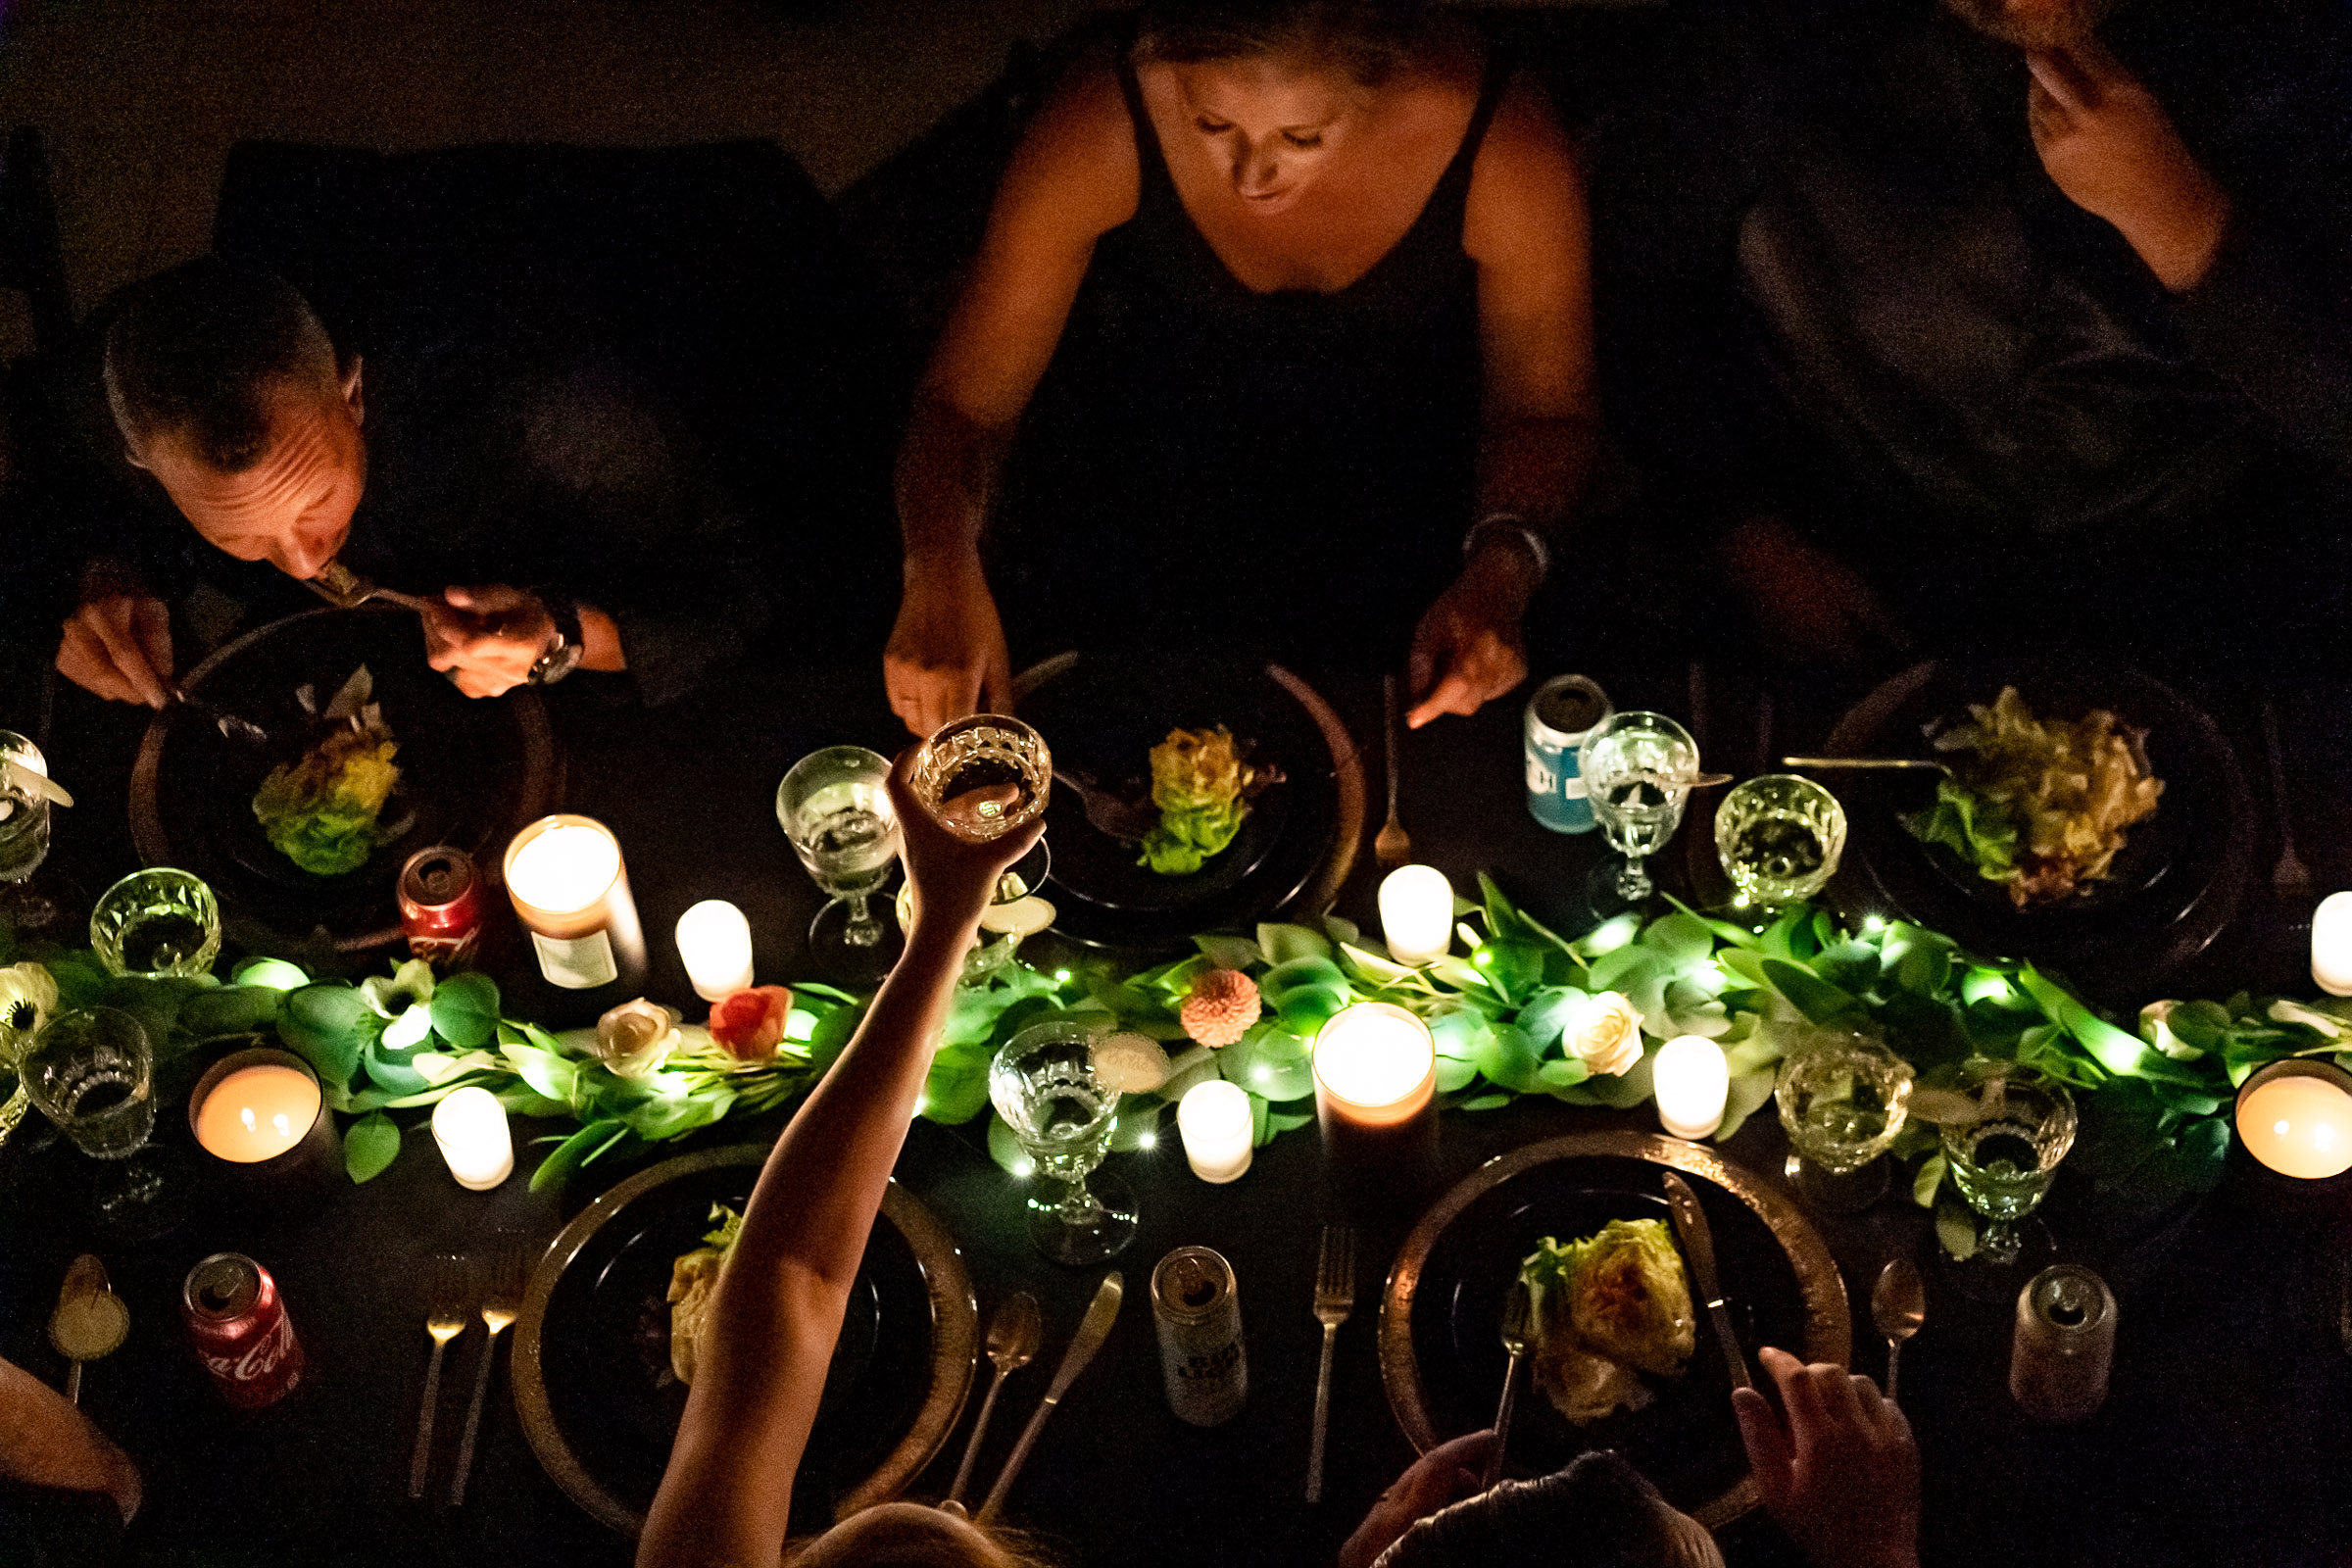 The guests of a wedding sitting at a long black dinner table with candles, gold runners, black plates, g old silverware, green garland, red flowers. Photo by Gabby Jockers Photography. Garden of the Gods wedding, High point wedding, Colorado intimate wedding, Colorado elopement ideas, elopement inspiration, elopement ideas, Colorado elopement photographer, intimate wedding photography, Rocky Mountain national park wedding, rocky mountains, intimate wedding, September wedding, mountain ceremony view, red rocks wedding